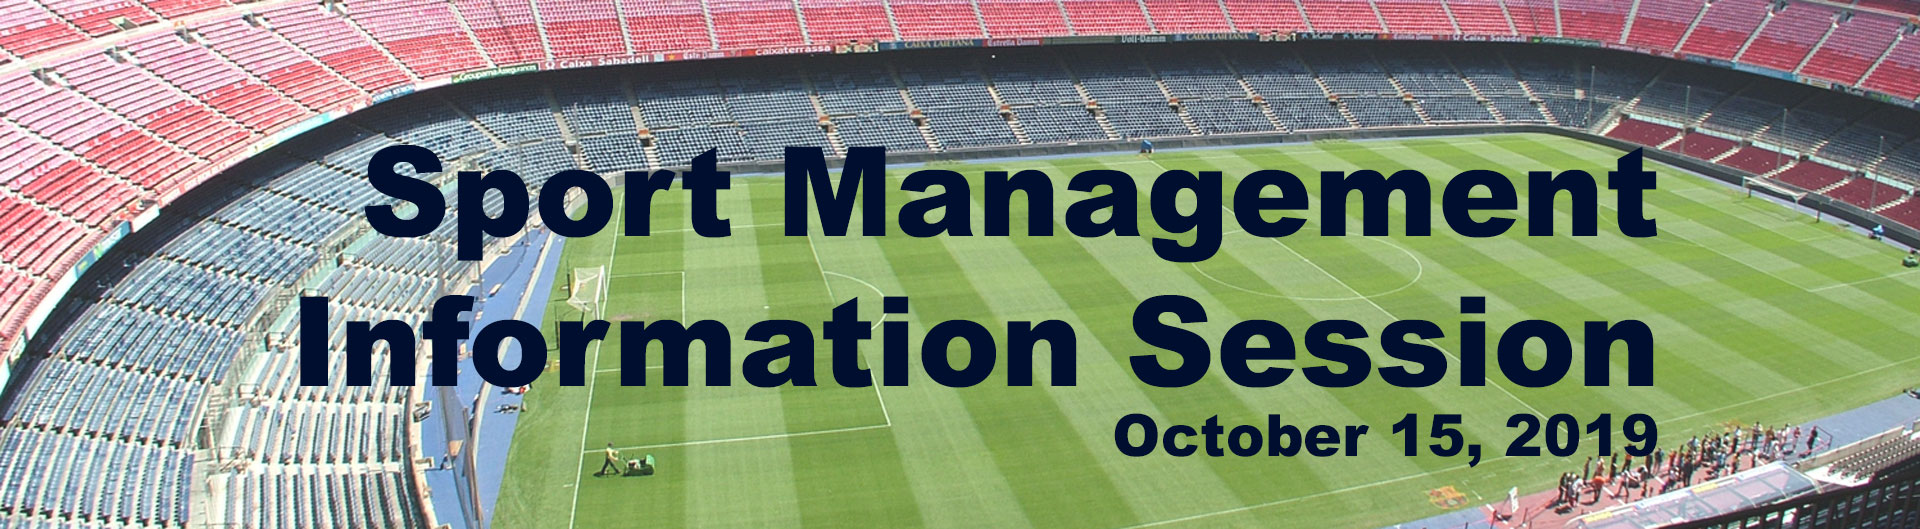 Athletic field. Text reads: Sport Management Information Session. October 15, 2019